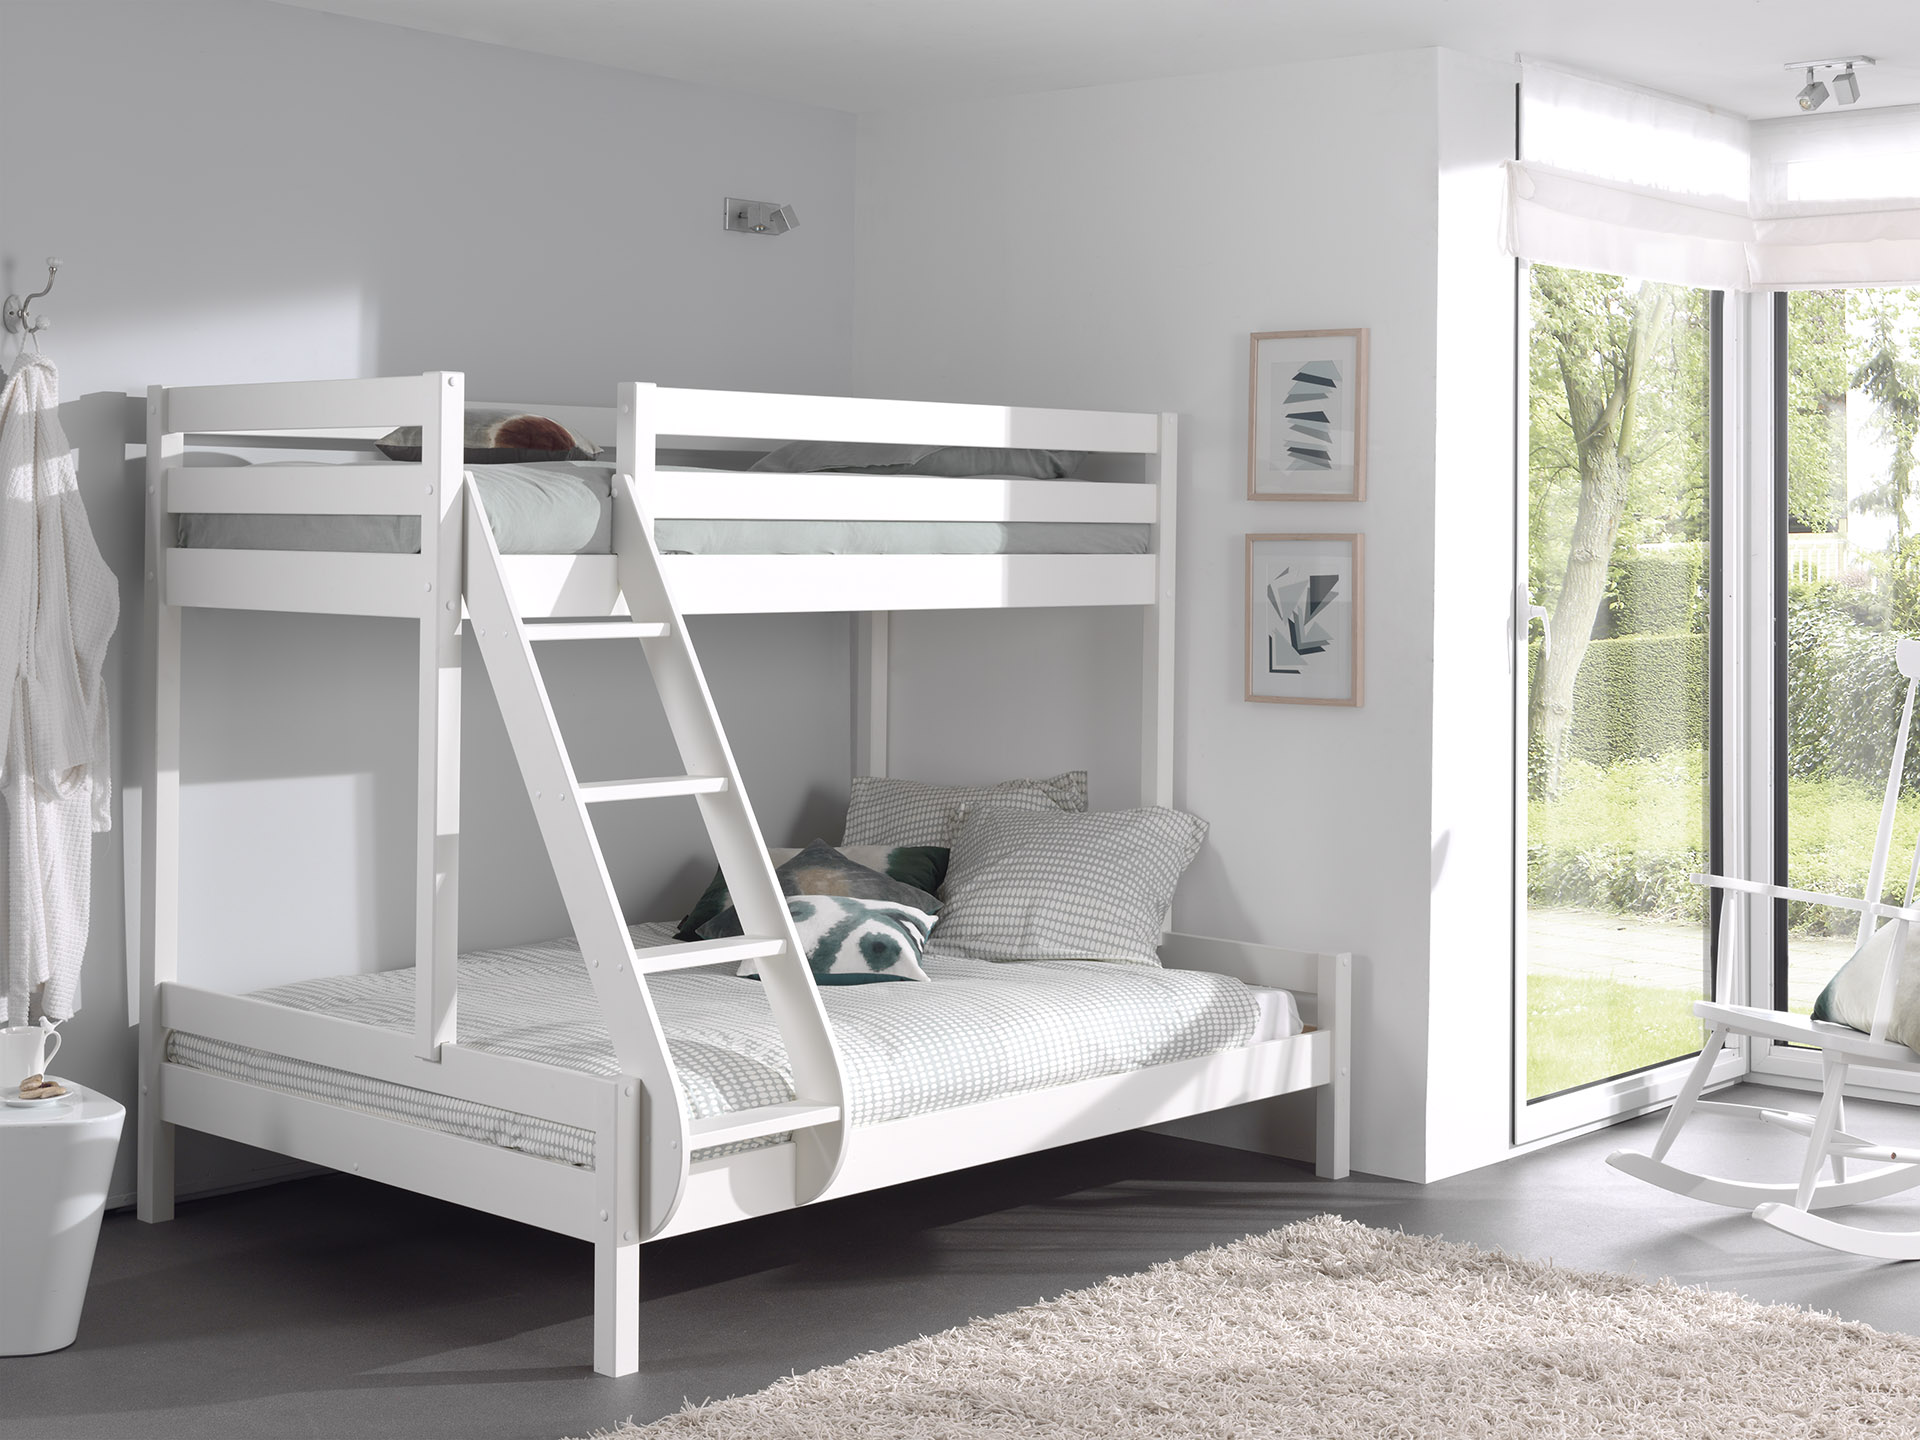 Picture of: Family Double Bunk Bed Or Triple Sleeper Bed Solid Wood White